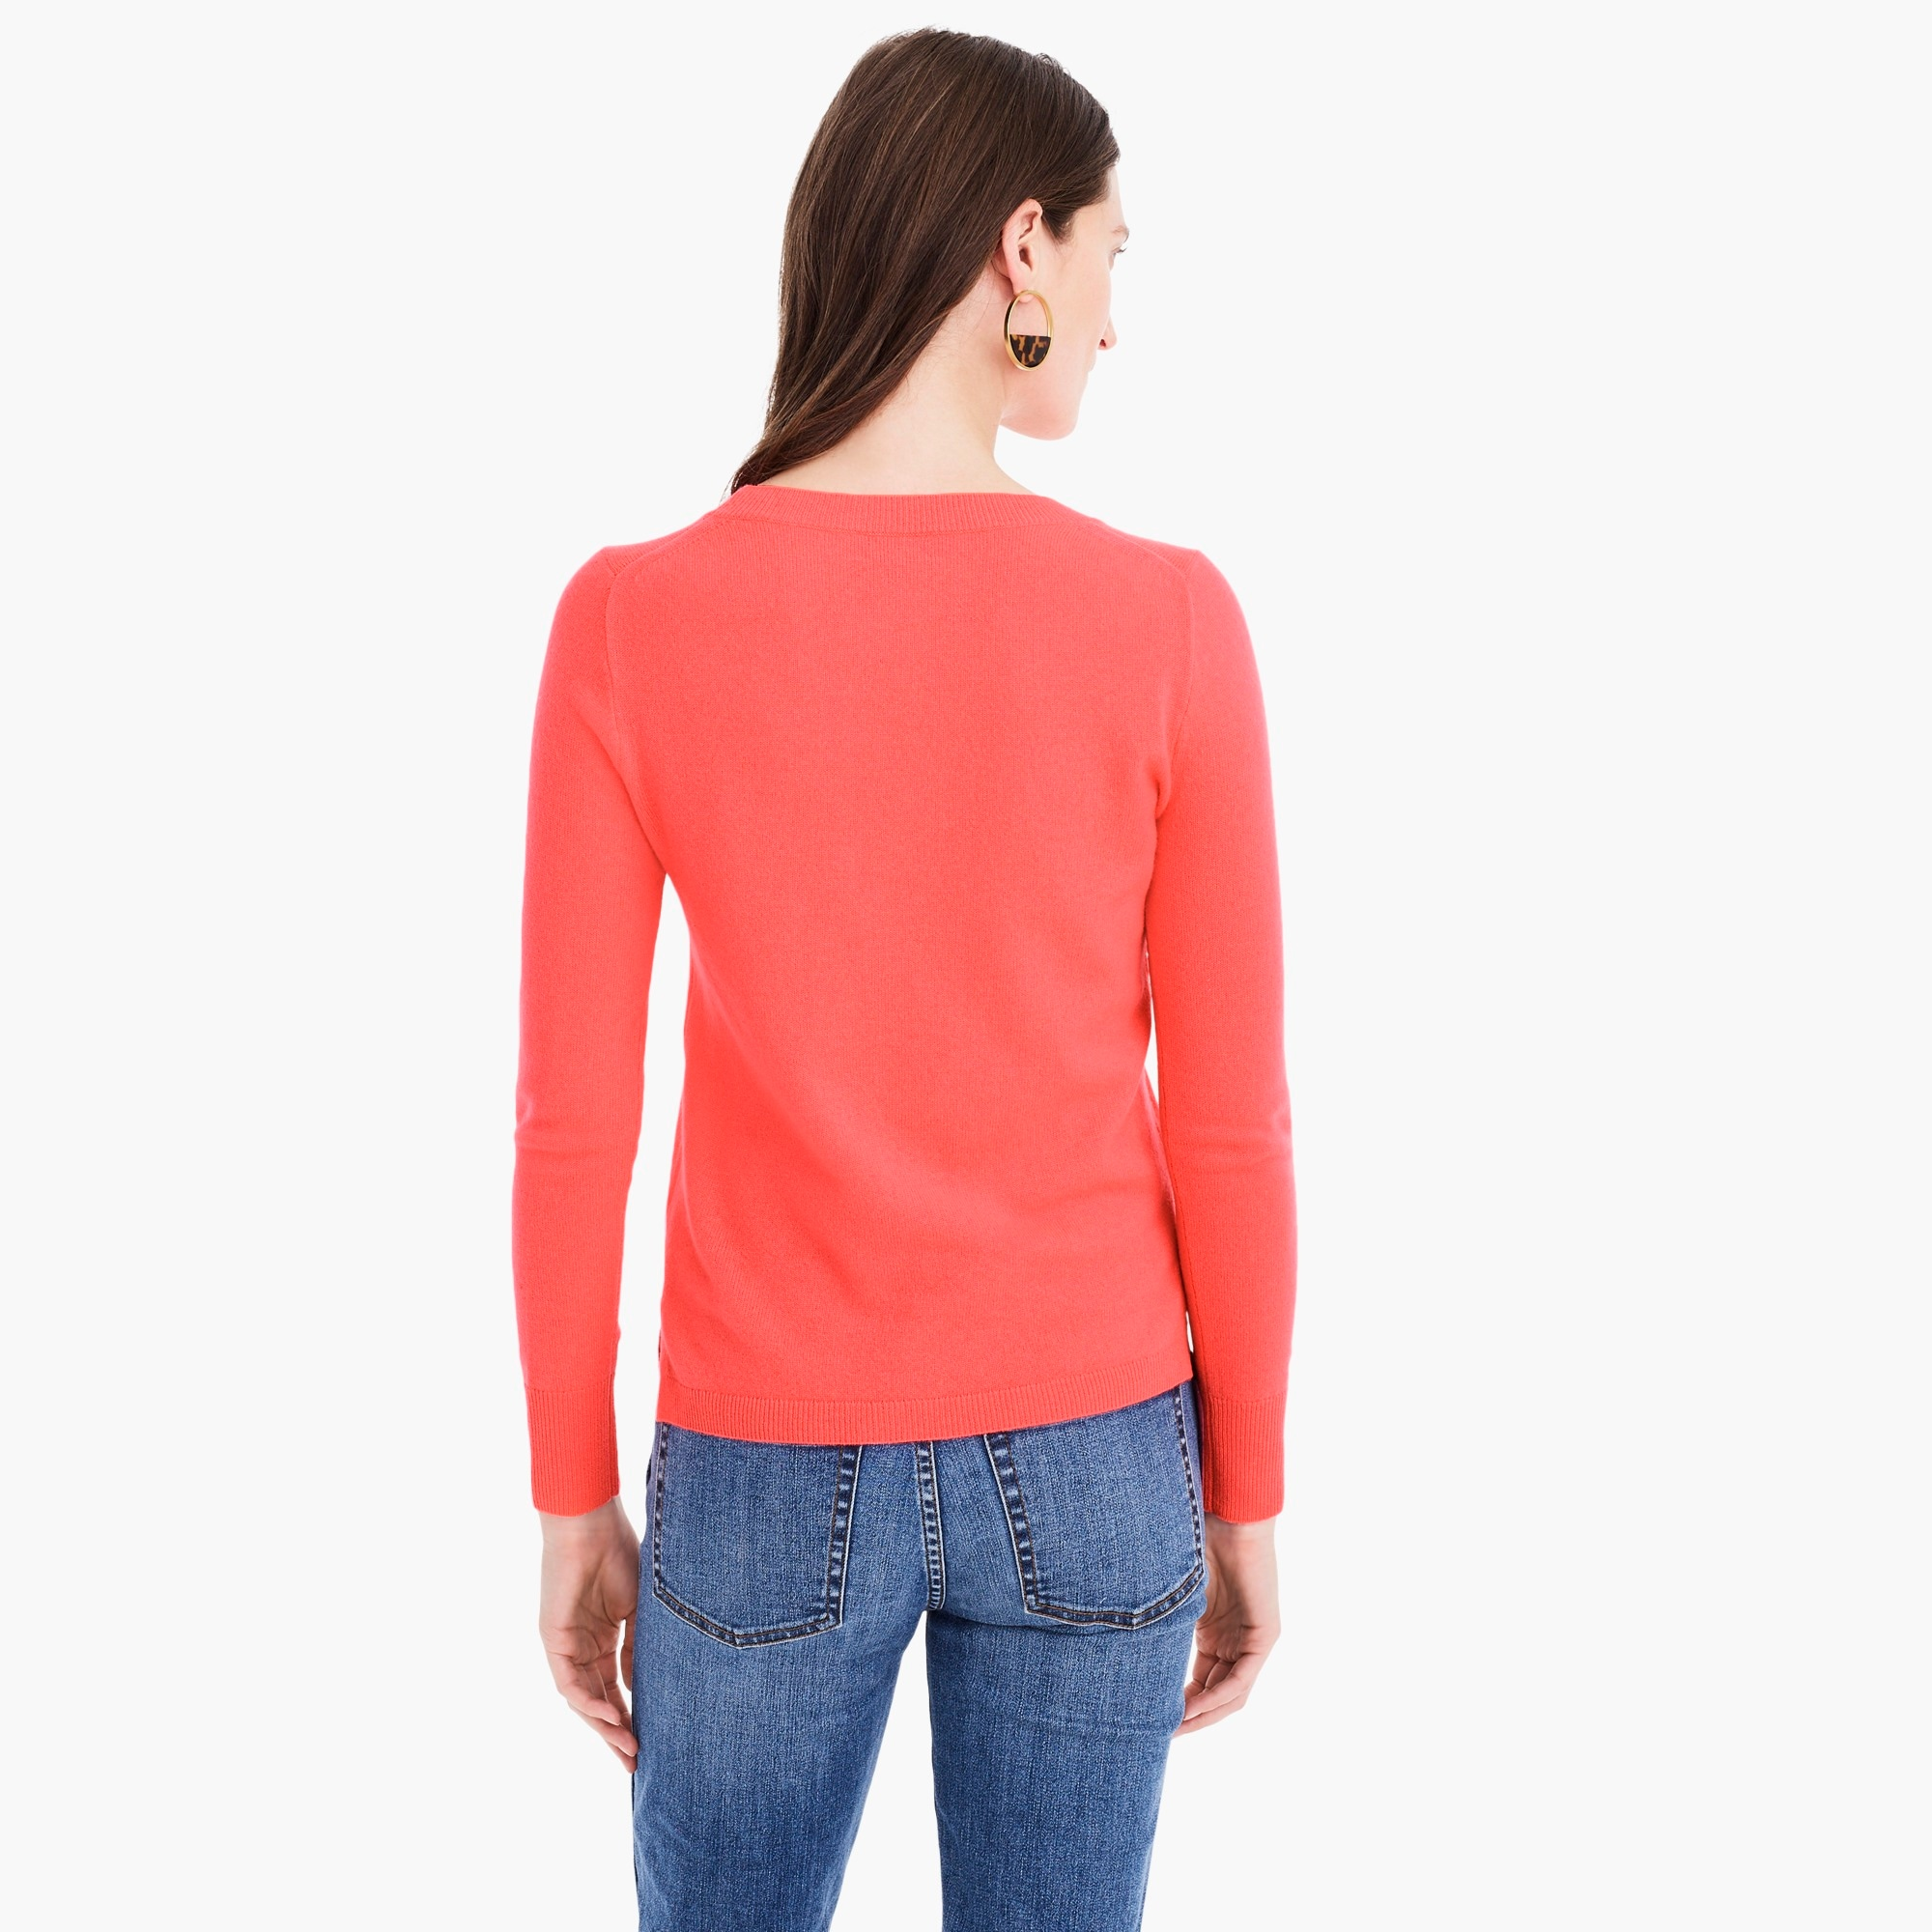 Image 6 for Long-sleeve everyday cashmere crewneck sweater